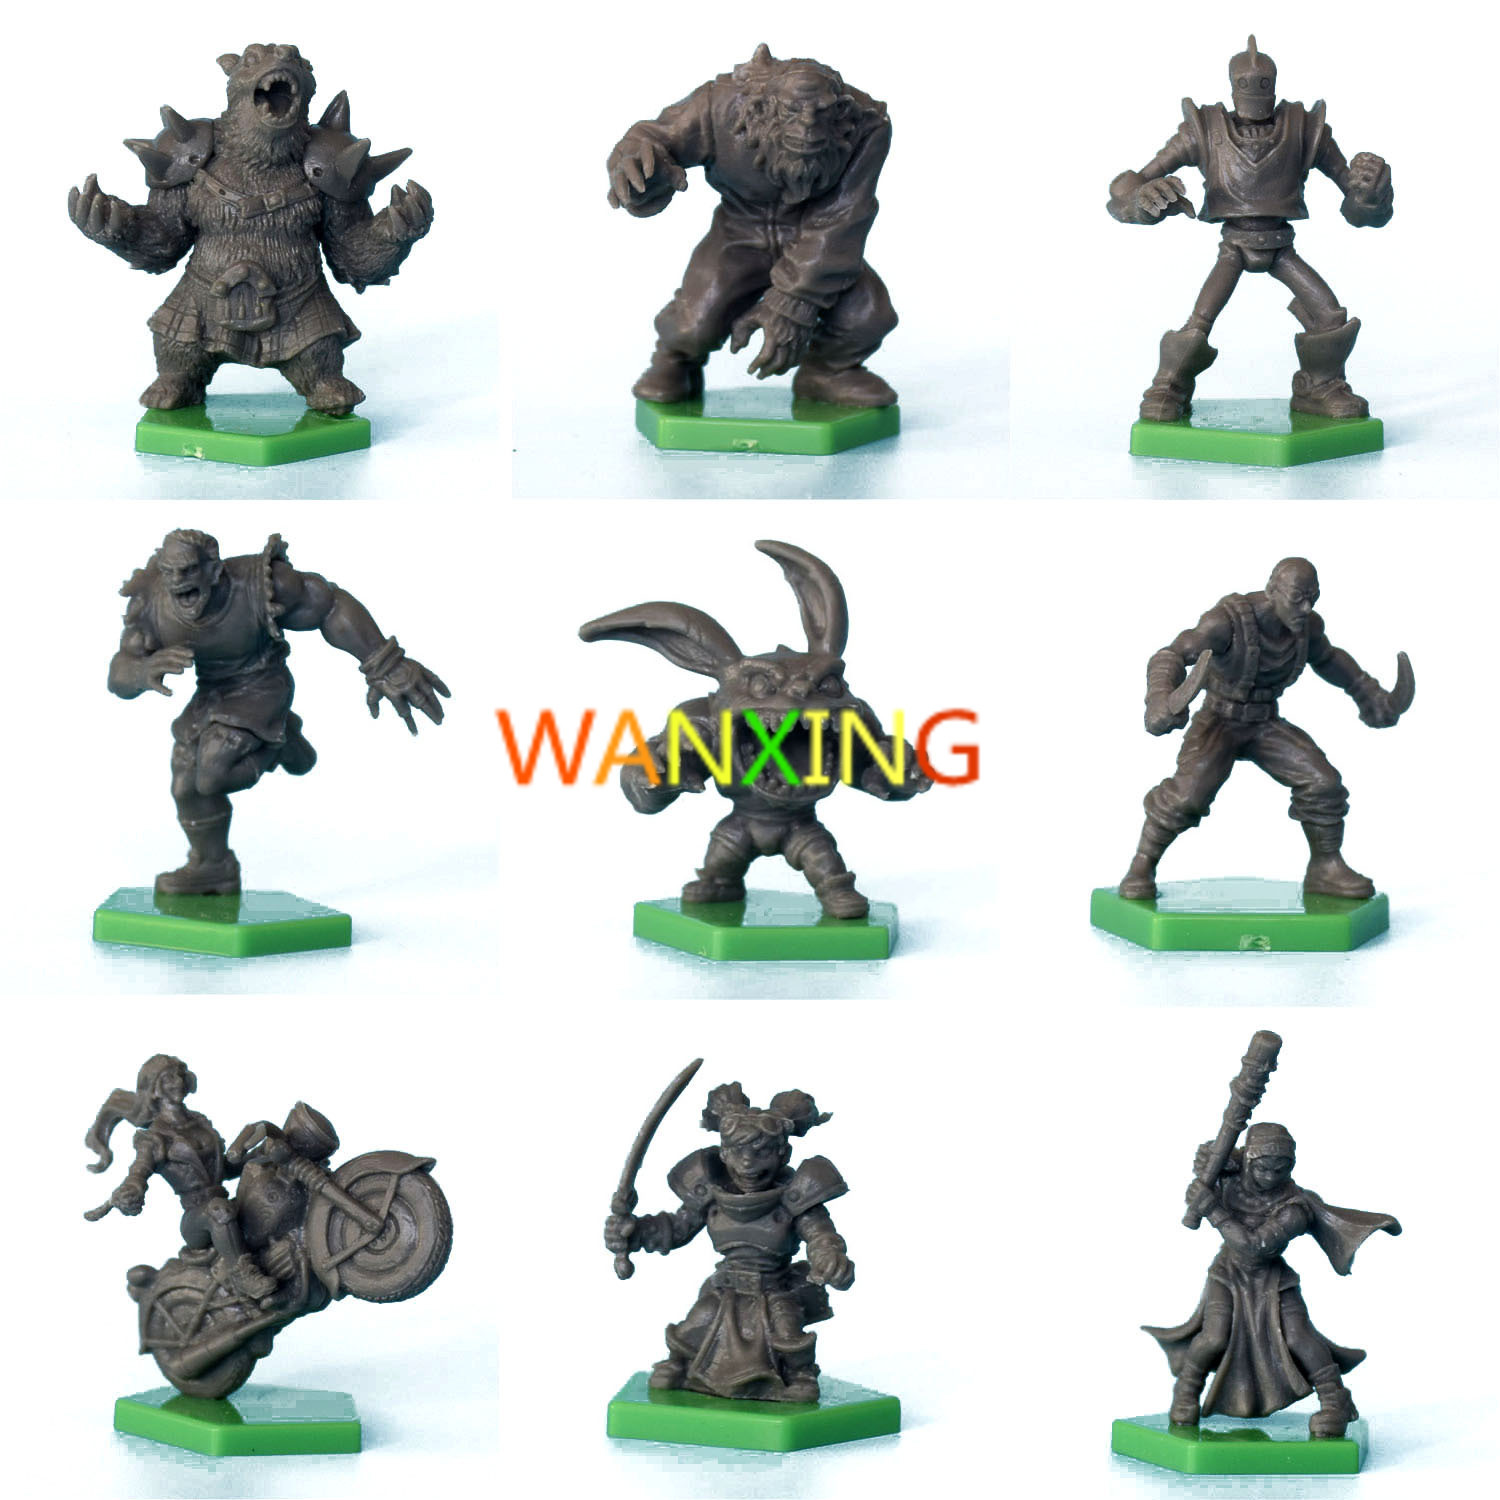 1/72 Scale Models Kaosball Role Playing Board Game Resin DIY Kit Extended Toys For Children Free Shipping